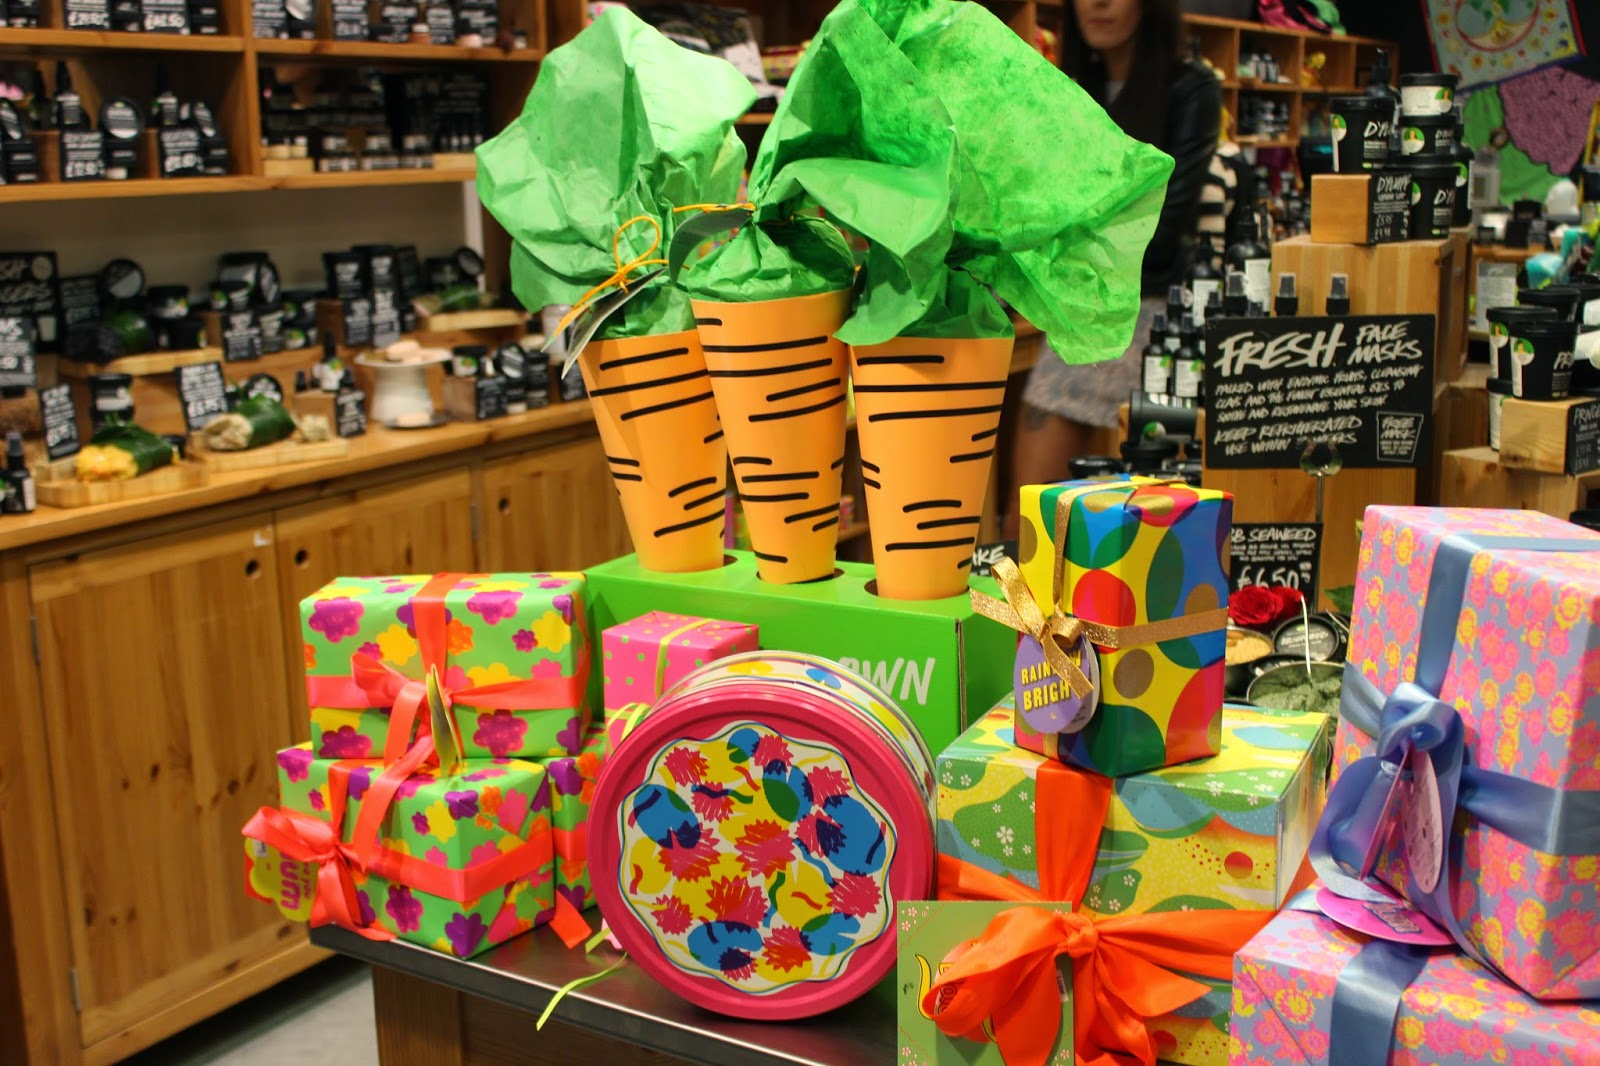 Lush-Plymouth-bloggers